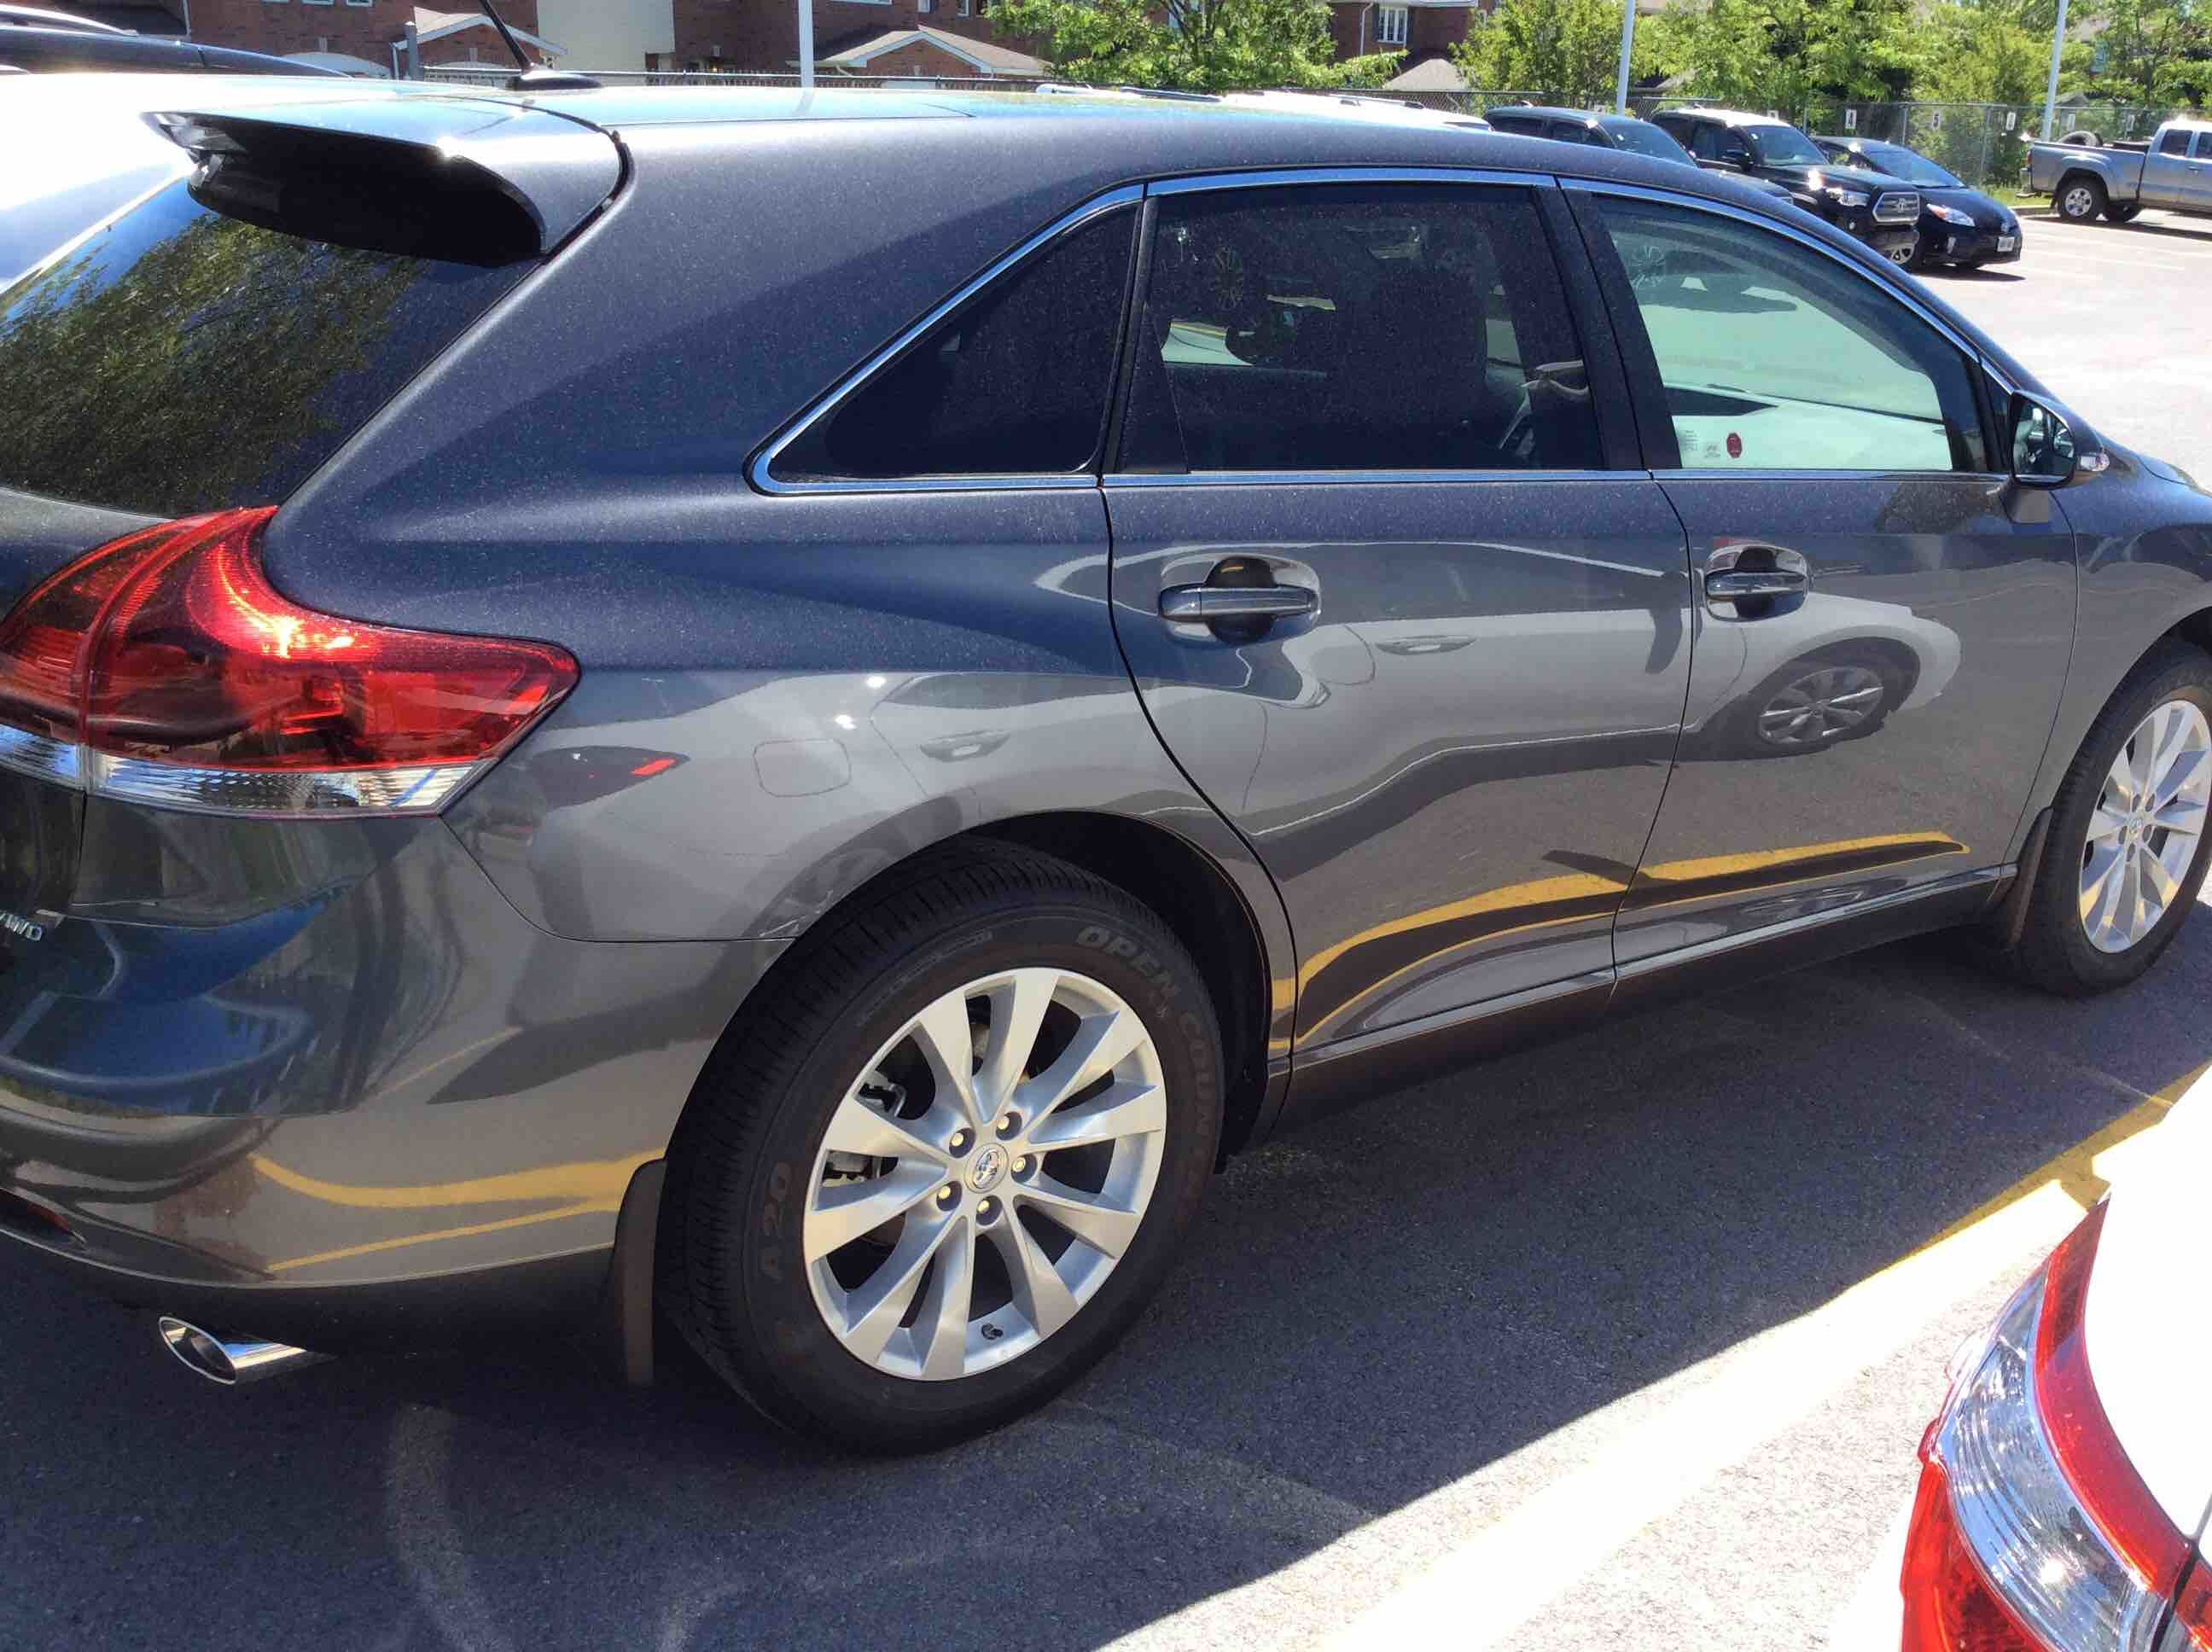 awdthe toyota both limited of awd car best diva venza worlds the